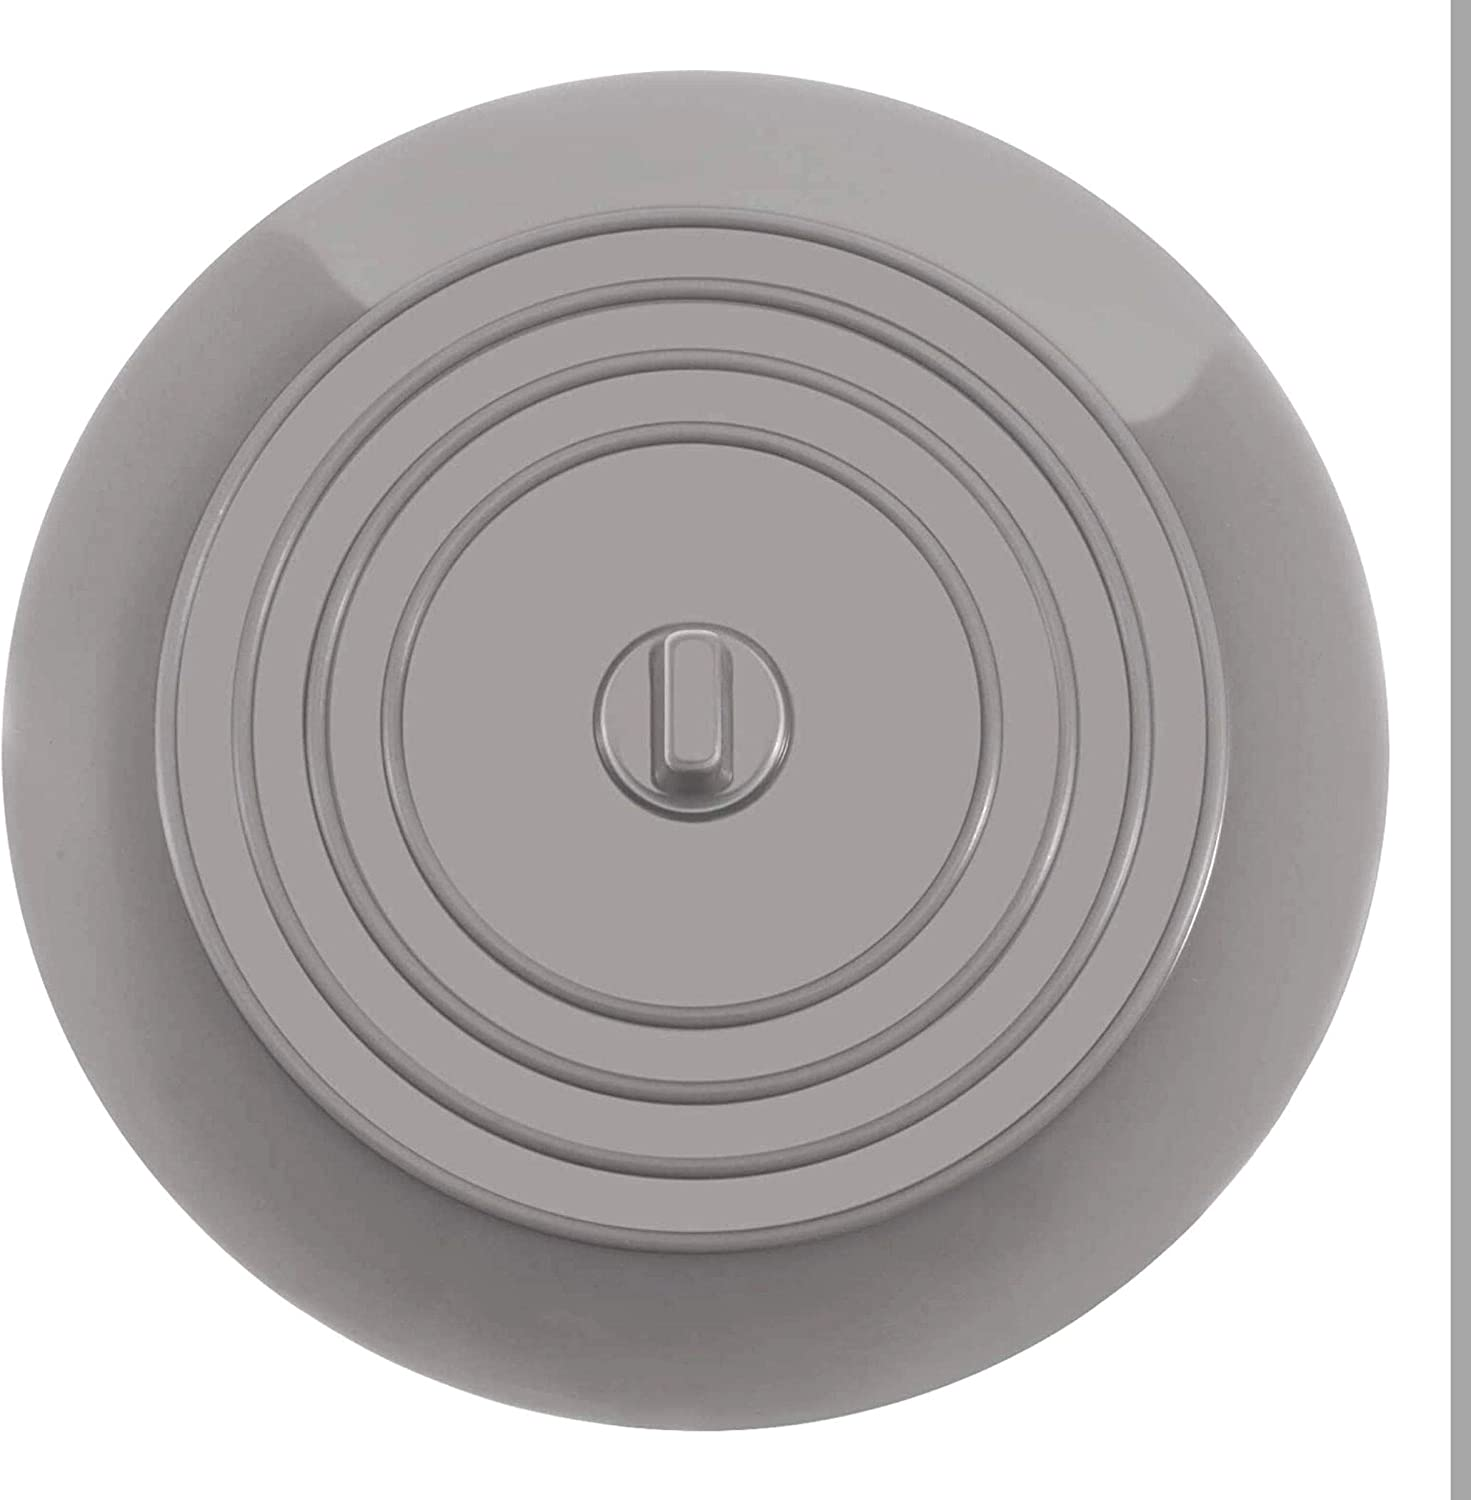 Dirt-Resistant Drain Stopper Made of Silicone Drain Plug for Bathtub with a Diameter of 13 cm Sink and Sink Your Day Mate Universal Stopper in Gray Shower for All drains up to 90 mm